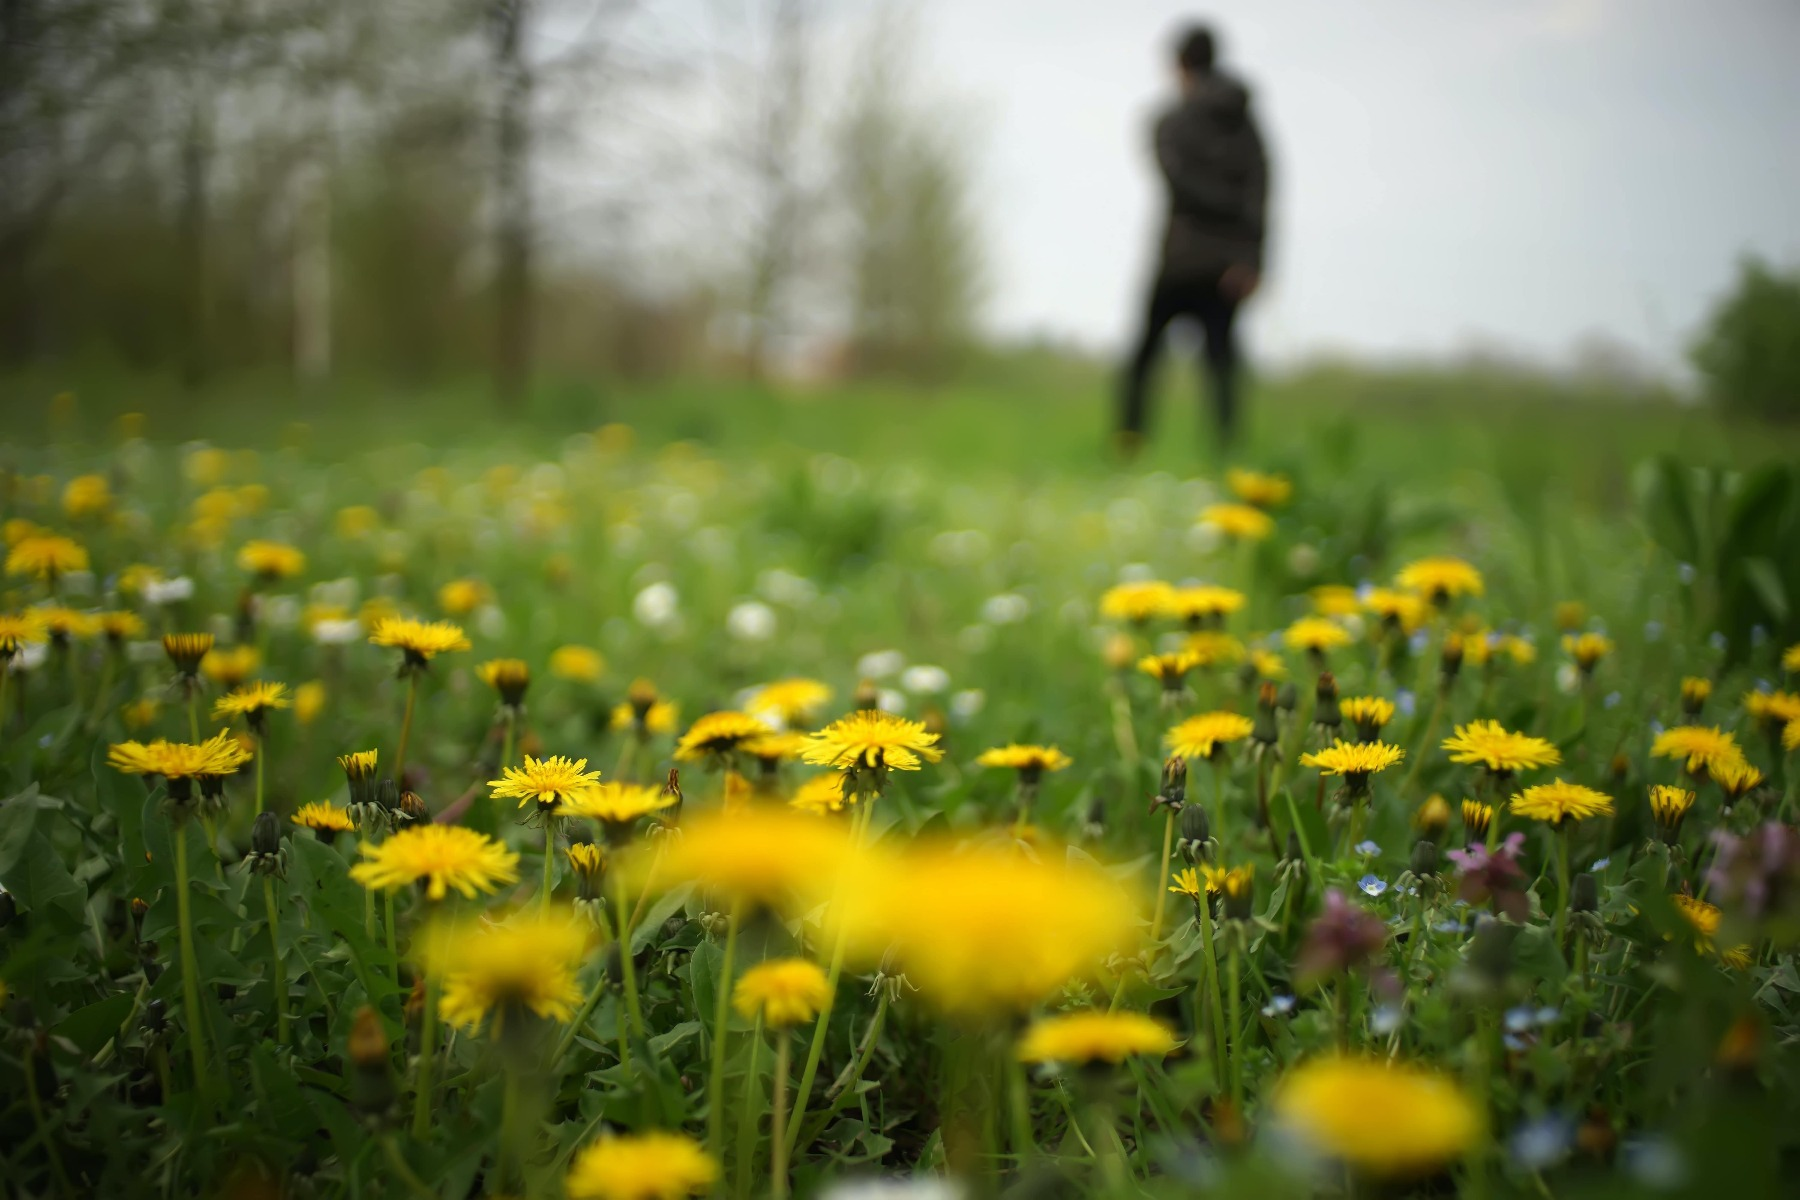 Dandelions Can Help Boost The Immune System